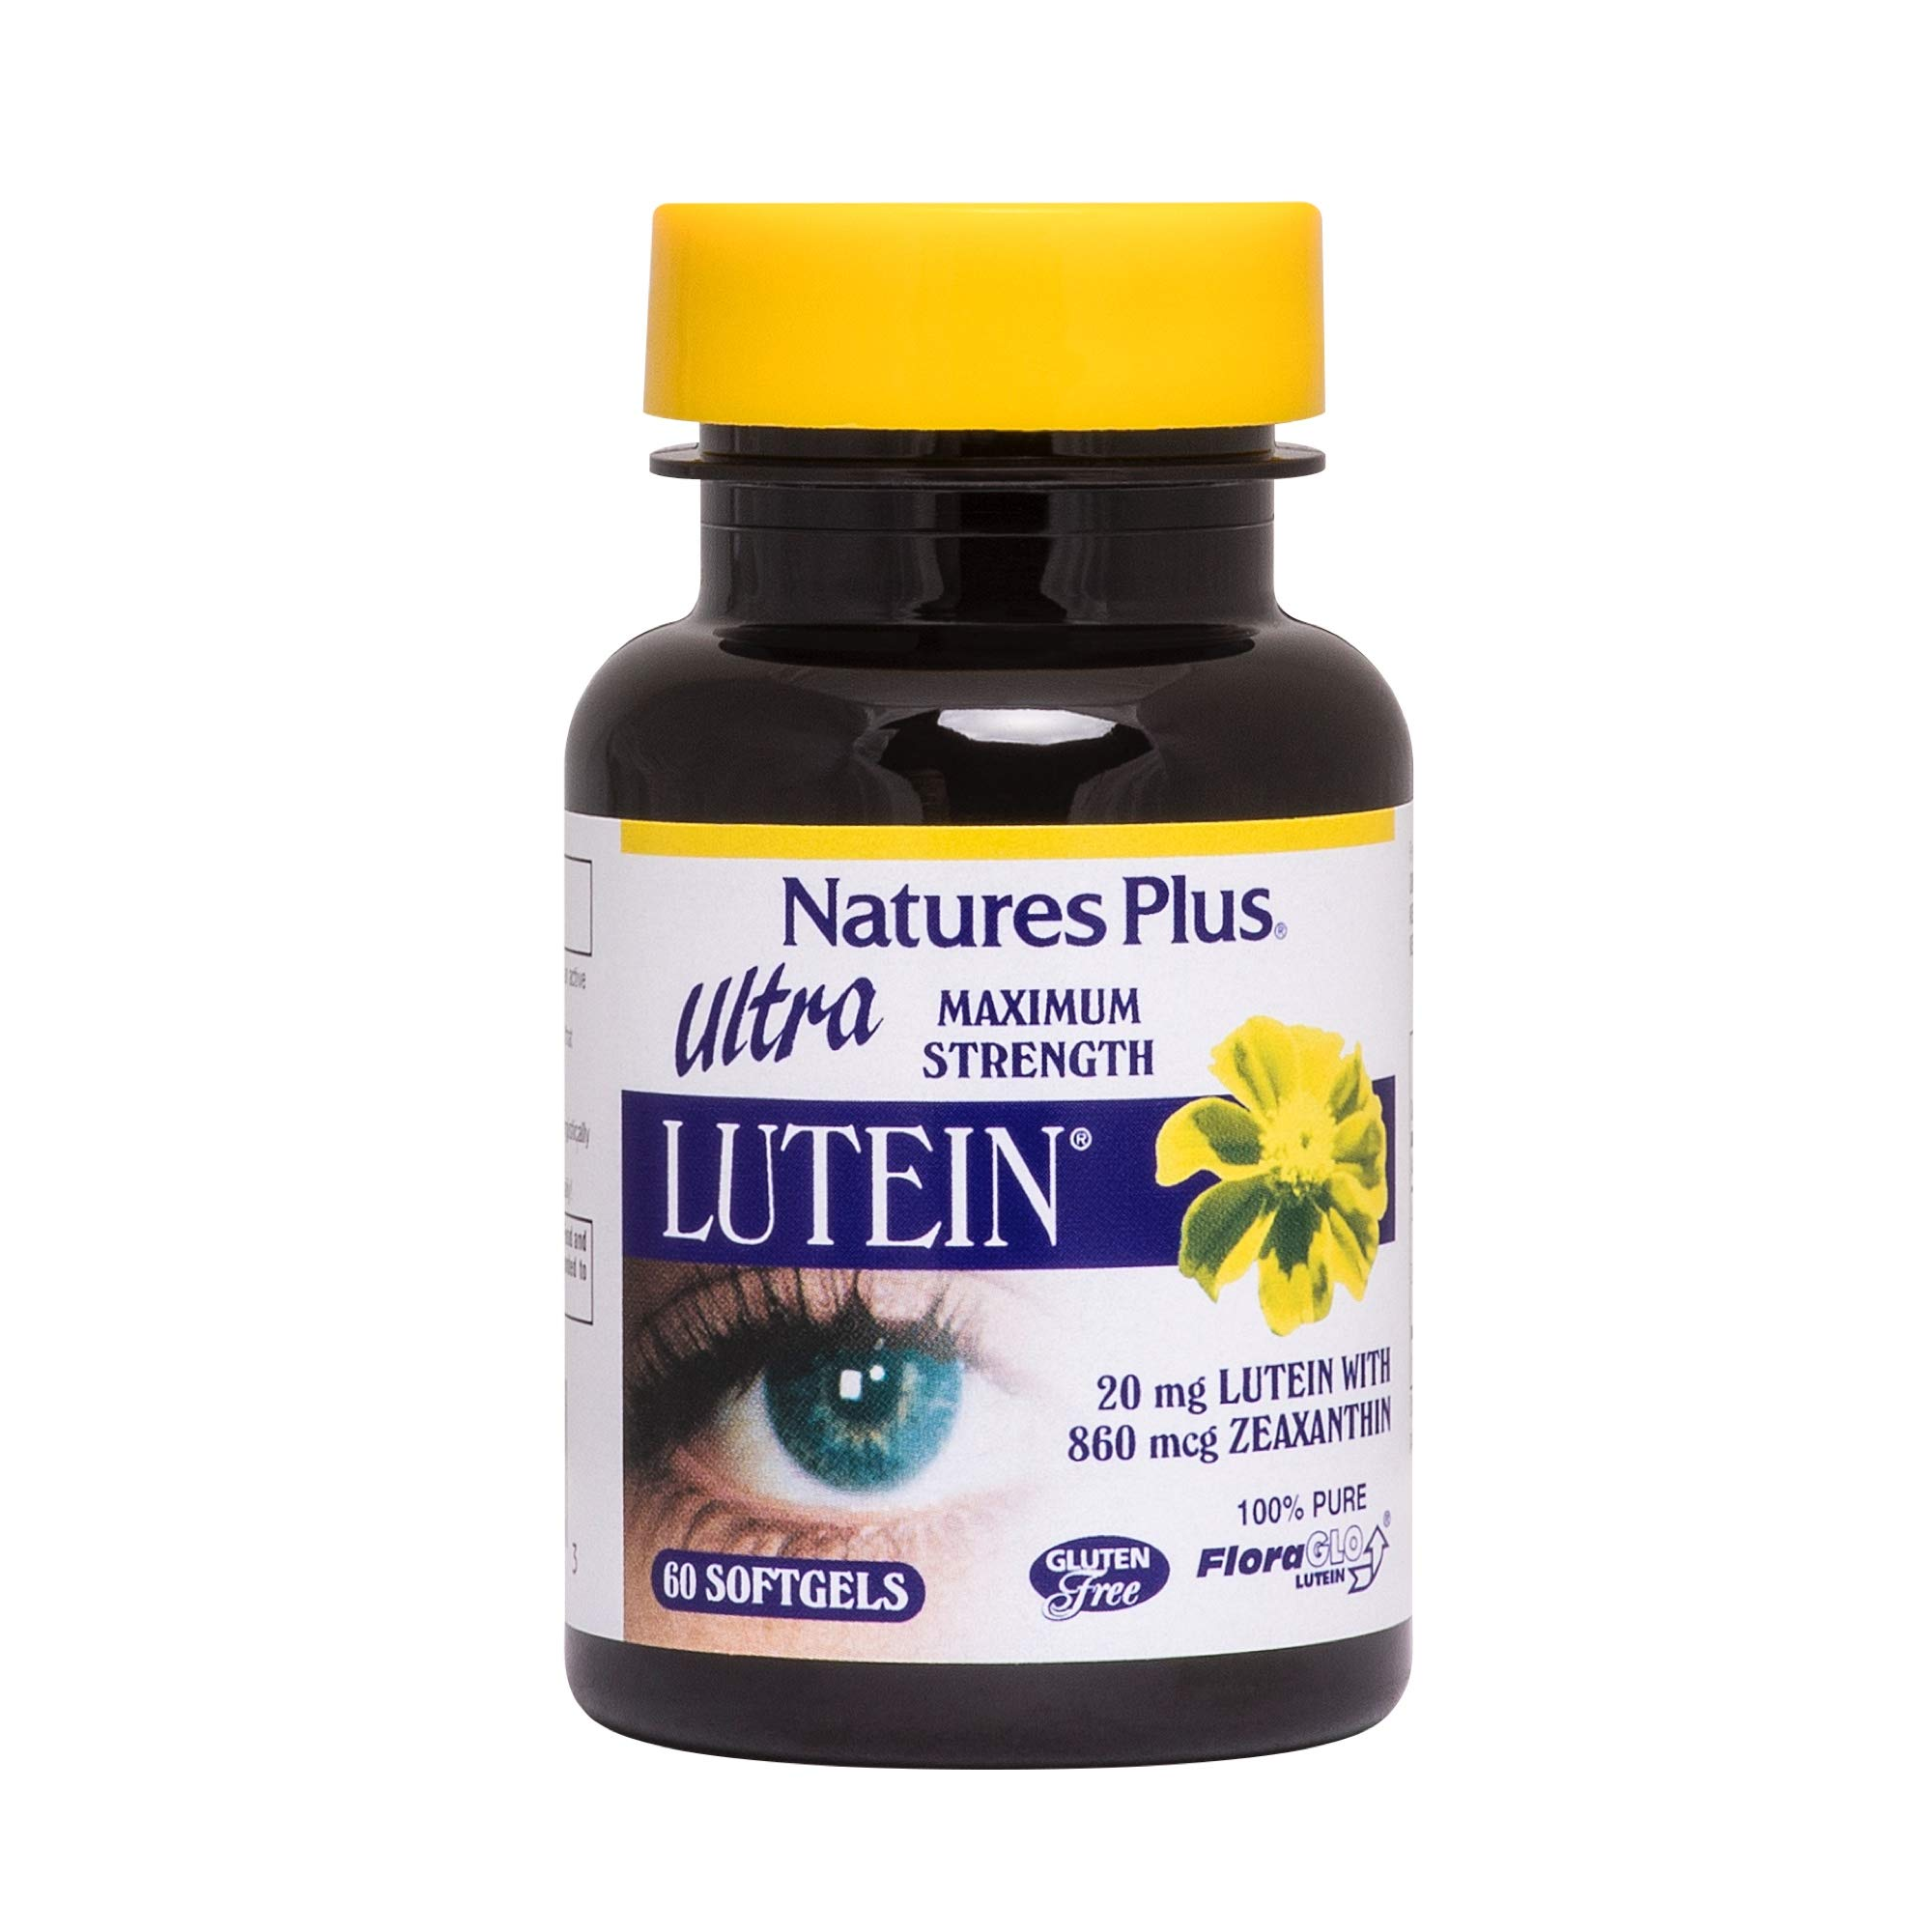 Natures Plus Ultra Lutein - 20 mg Lutein & 860 mcg Zeaxanthin, 60 Softgels - Eye Vitamin & Vision Supplement, Promotes Macular Health - Gluten Free - 60 Servings